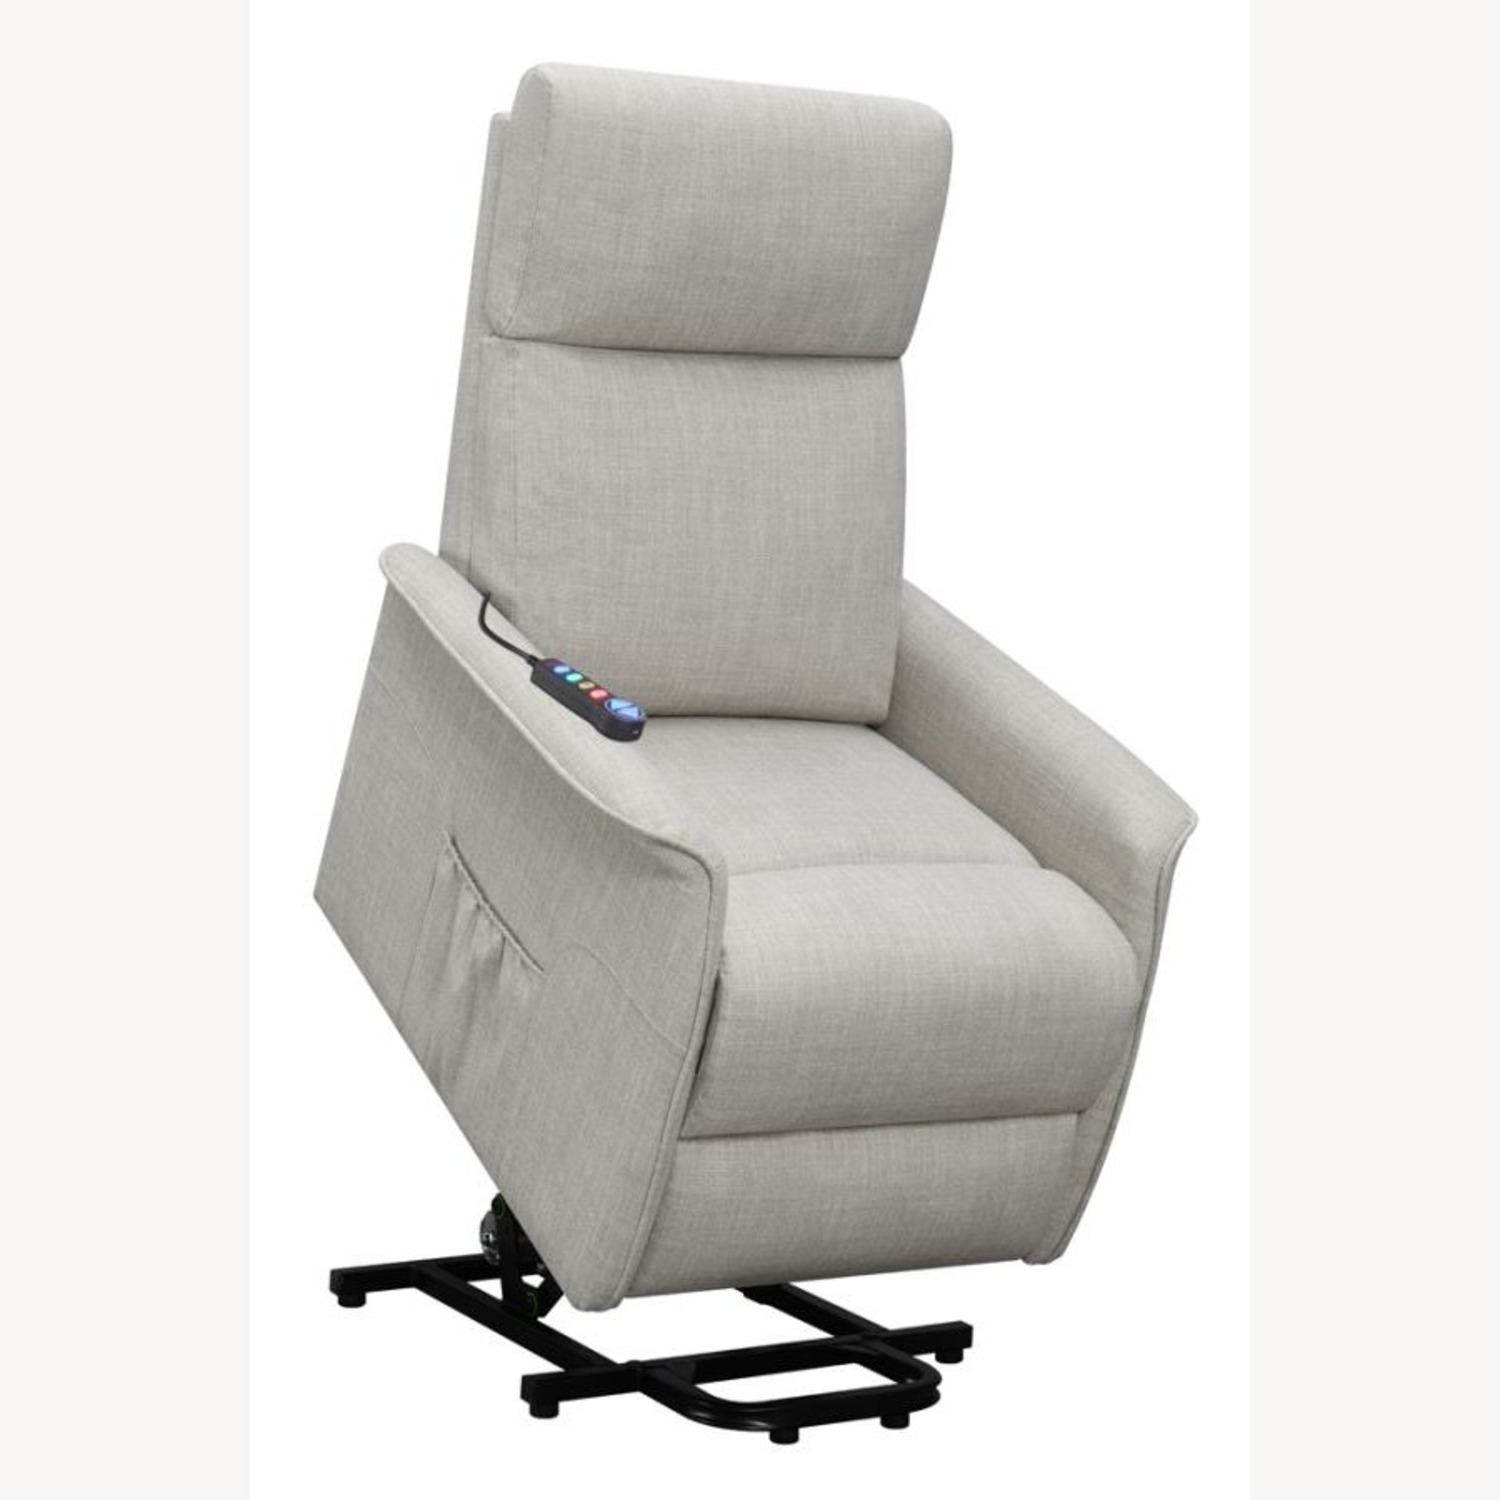 Power Lift Recliner Tufted In Beige Fabric - image-3